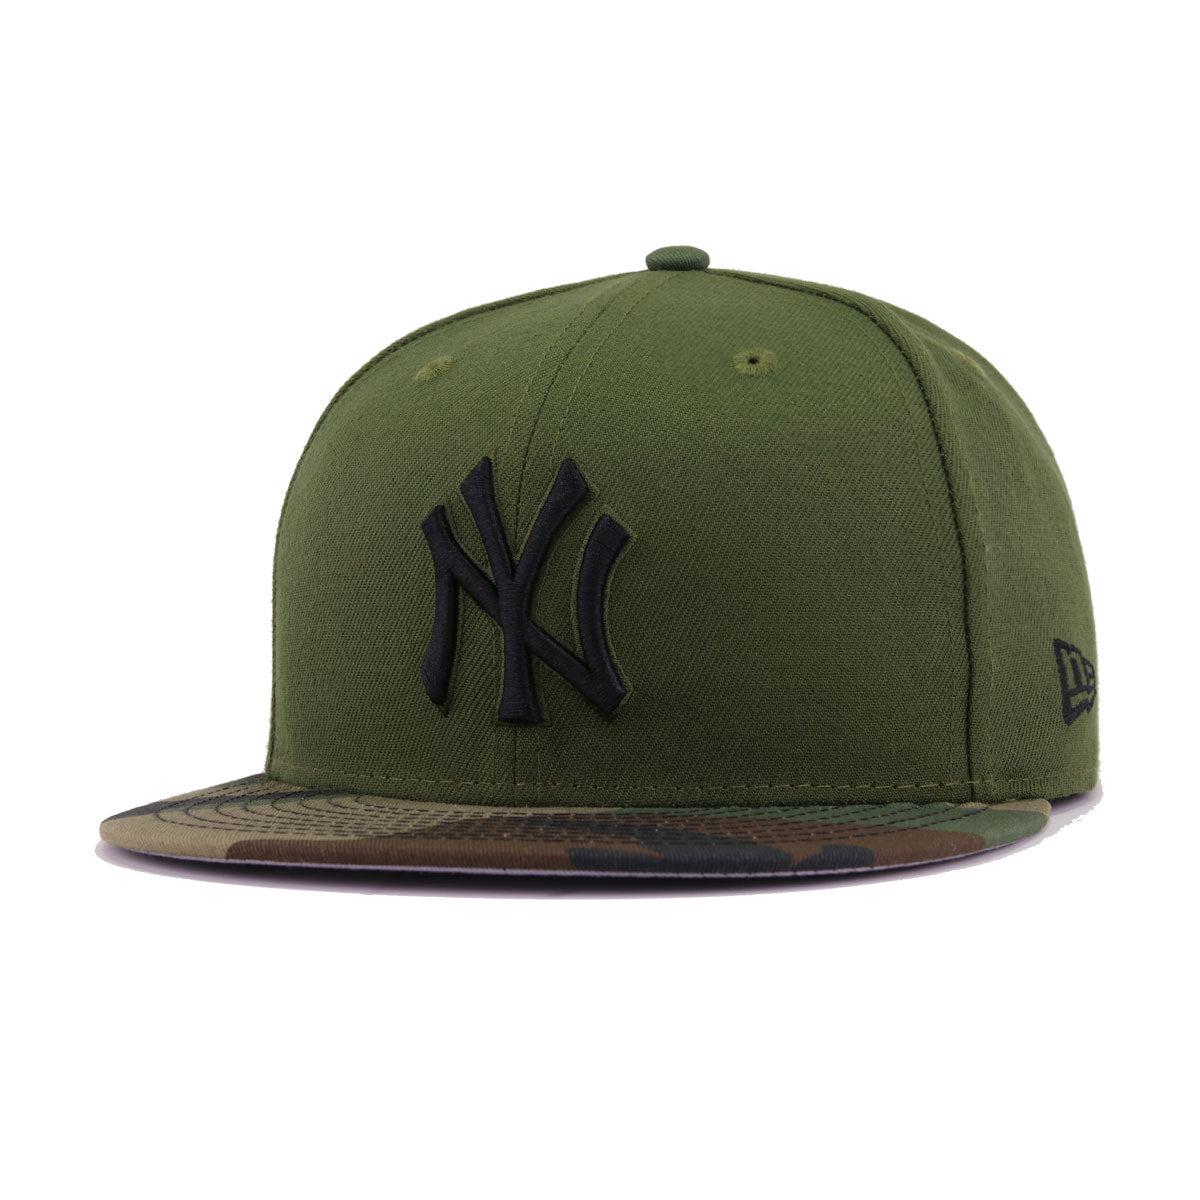 515ff1710a292 New York Yankees Rifle Green Woodland Camouflage Black New Era 59Fifty  Fitted